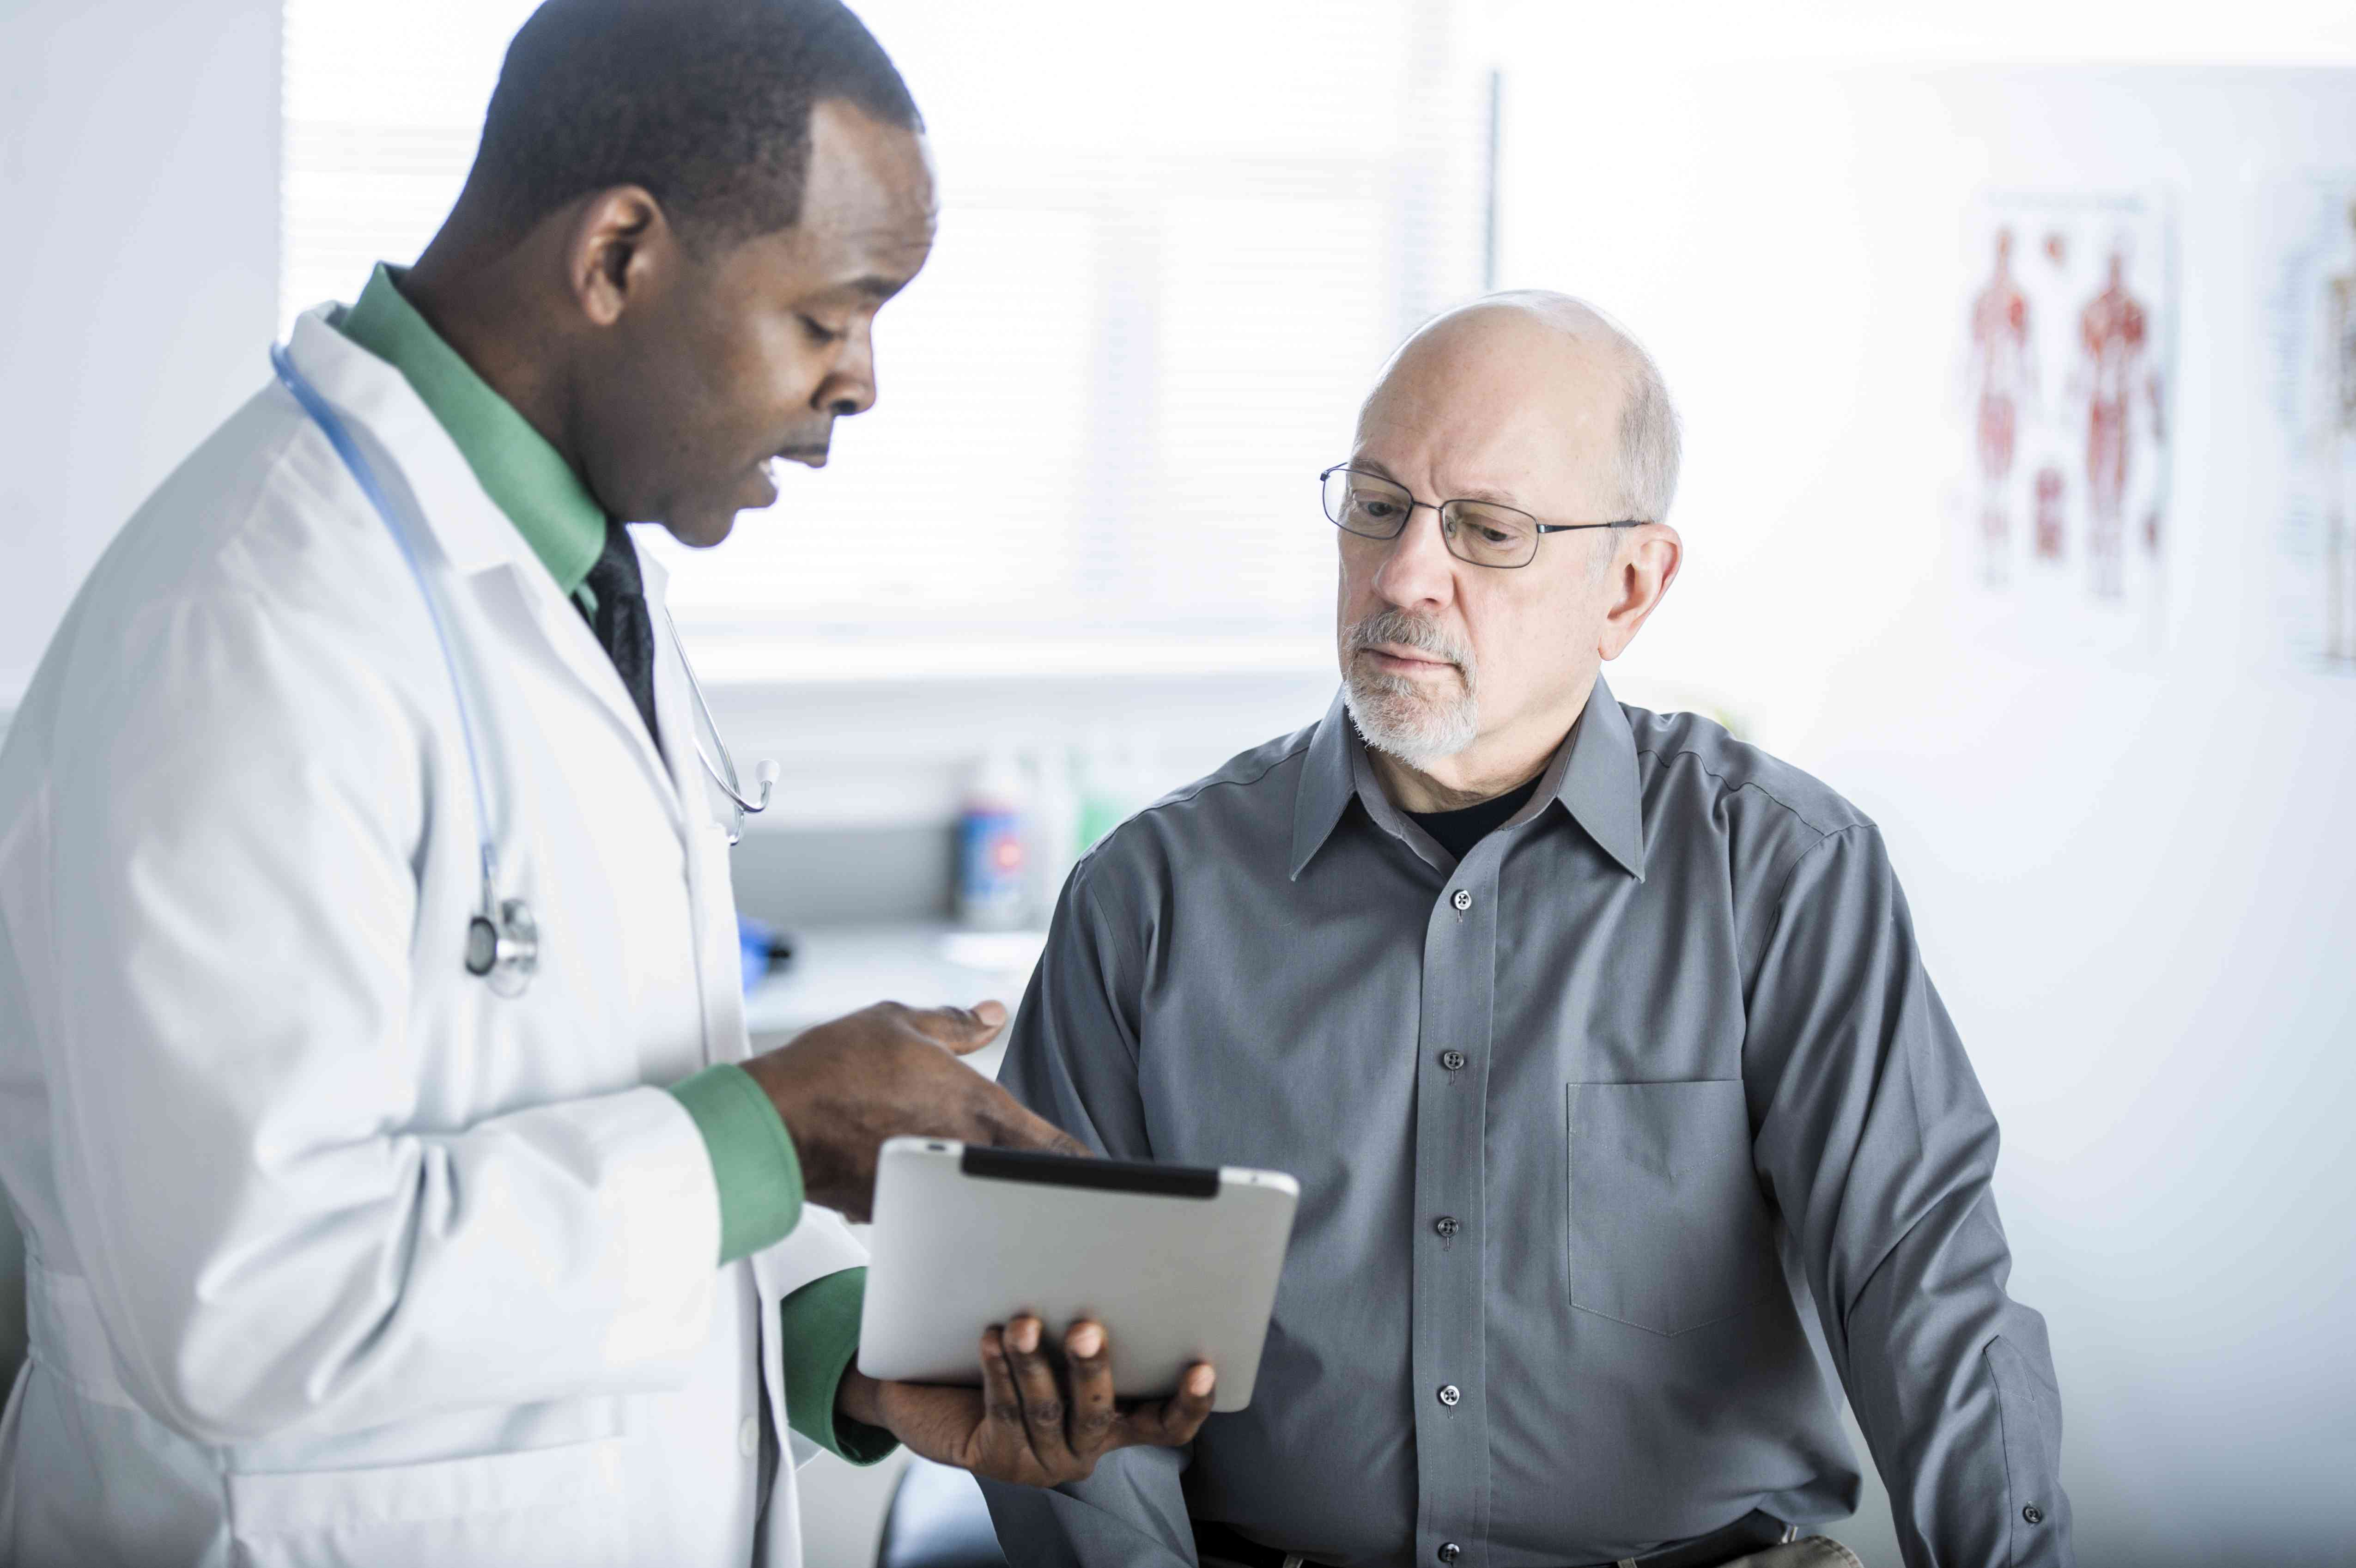 A doctor discusses stroke prevention with his patient